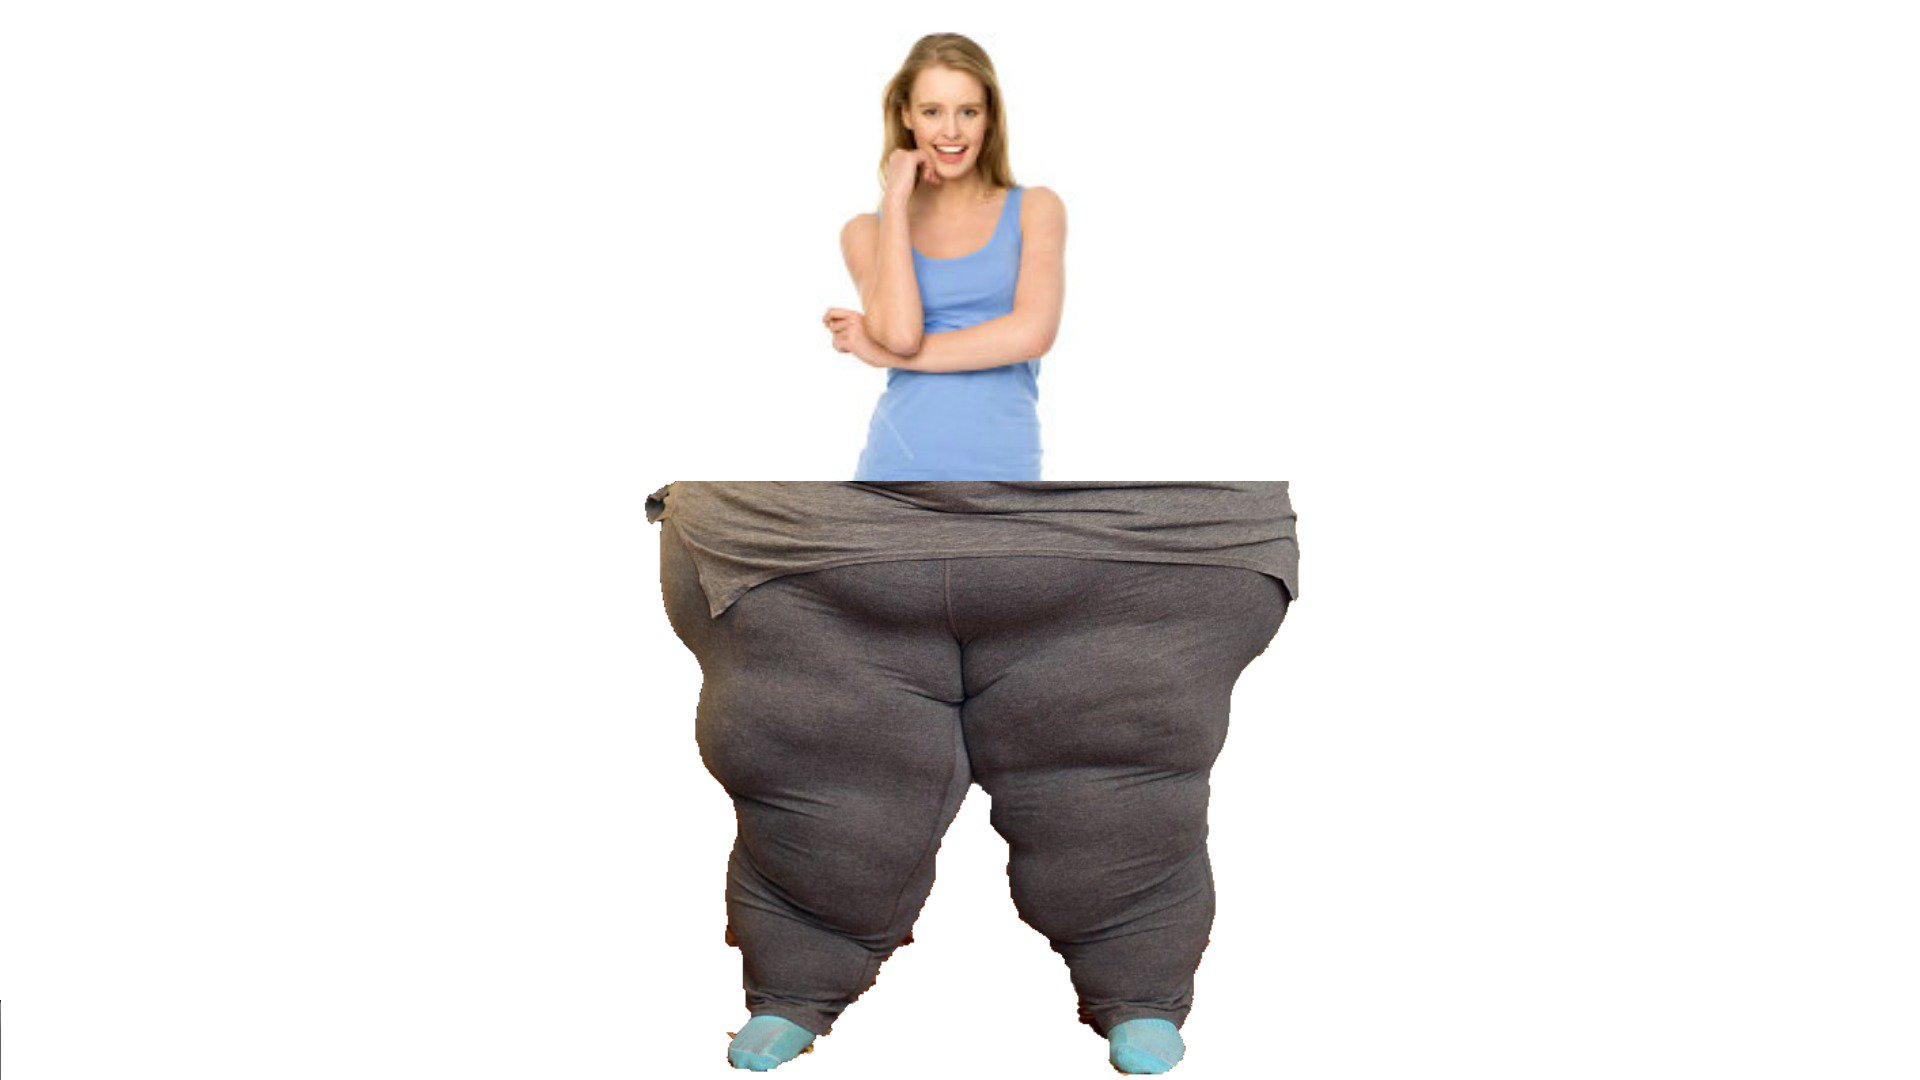 Lord Cowcow On Twitter If Roblox Fat Leg Girls Were Real